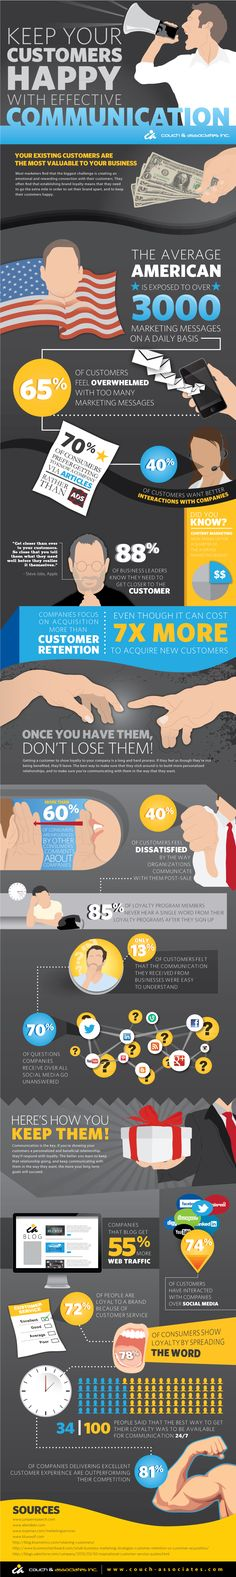 Keep your customers happy with effective communication #infographic